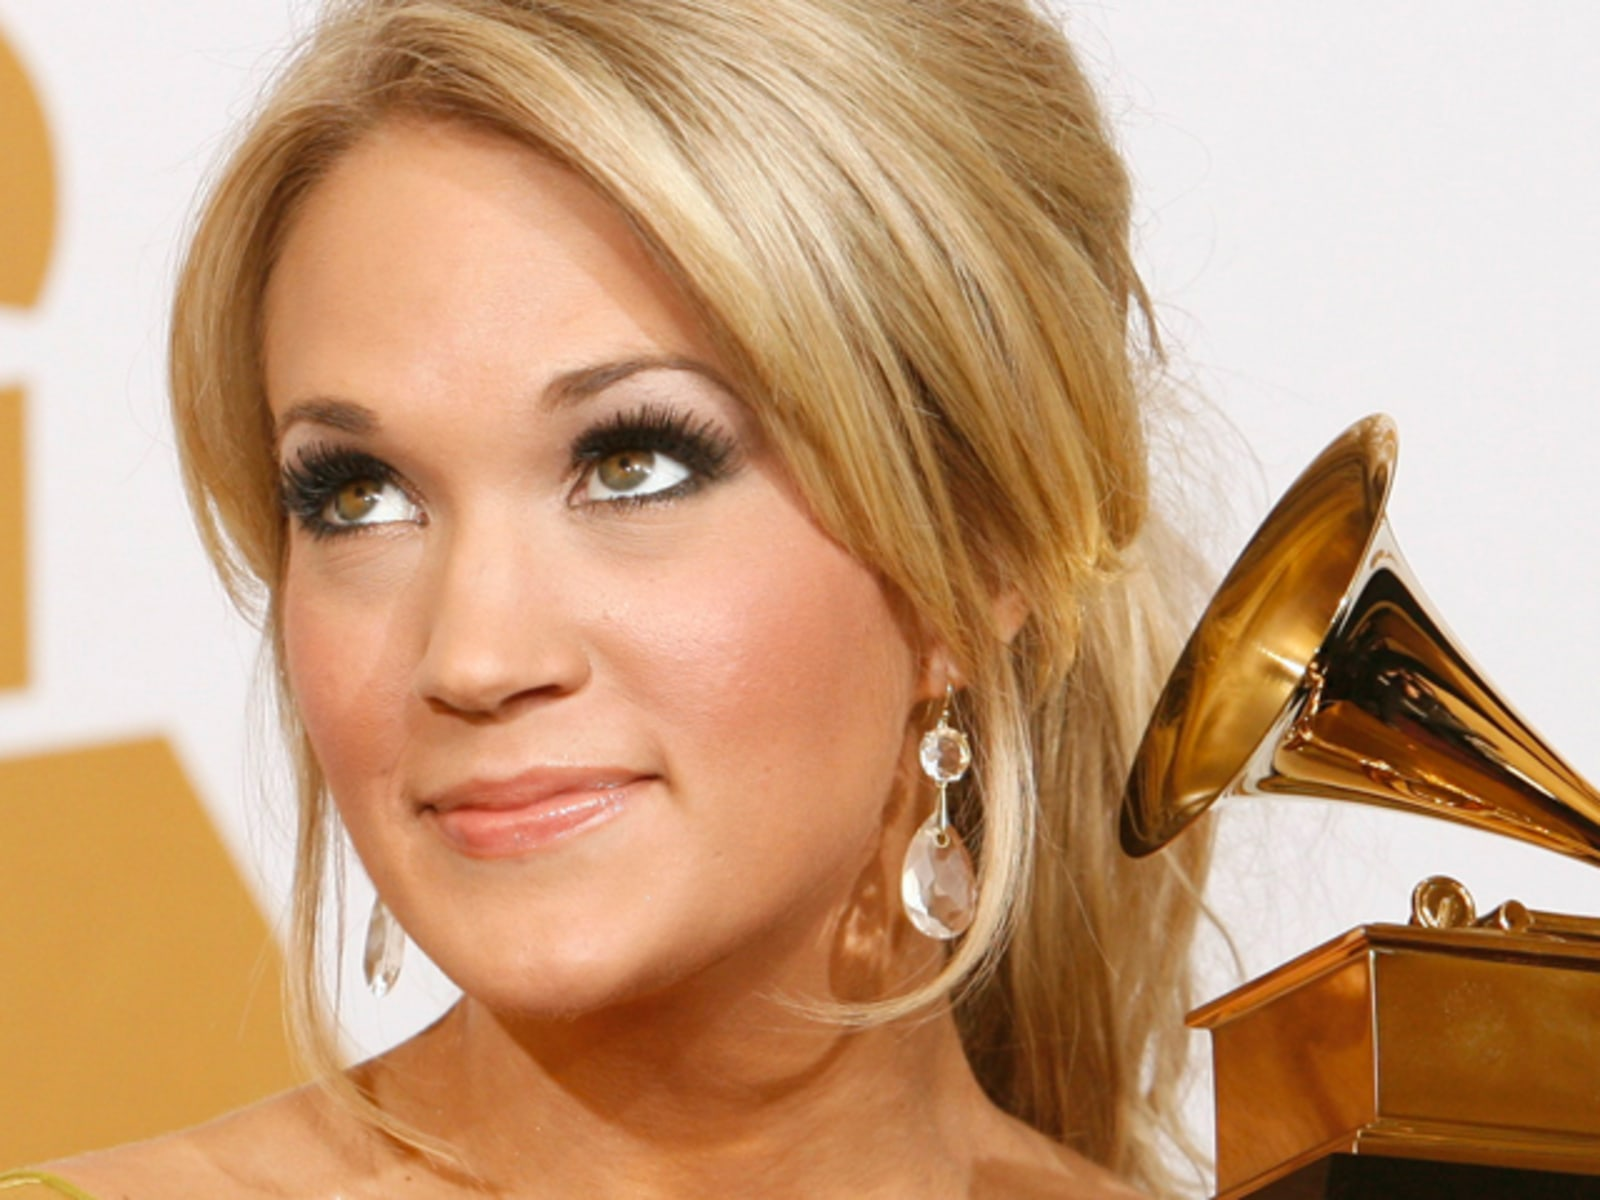 Image: Carrie Underwood